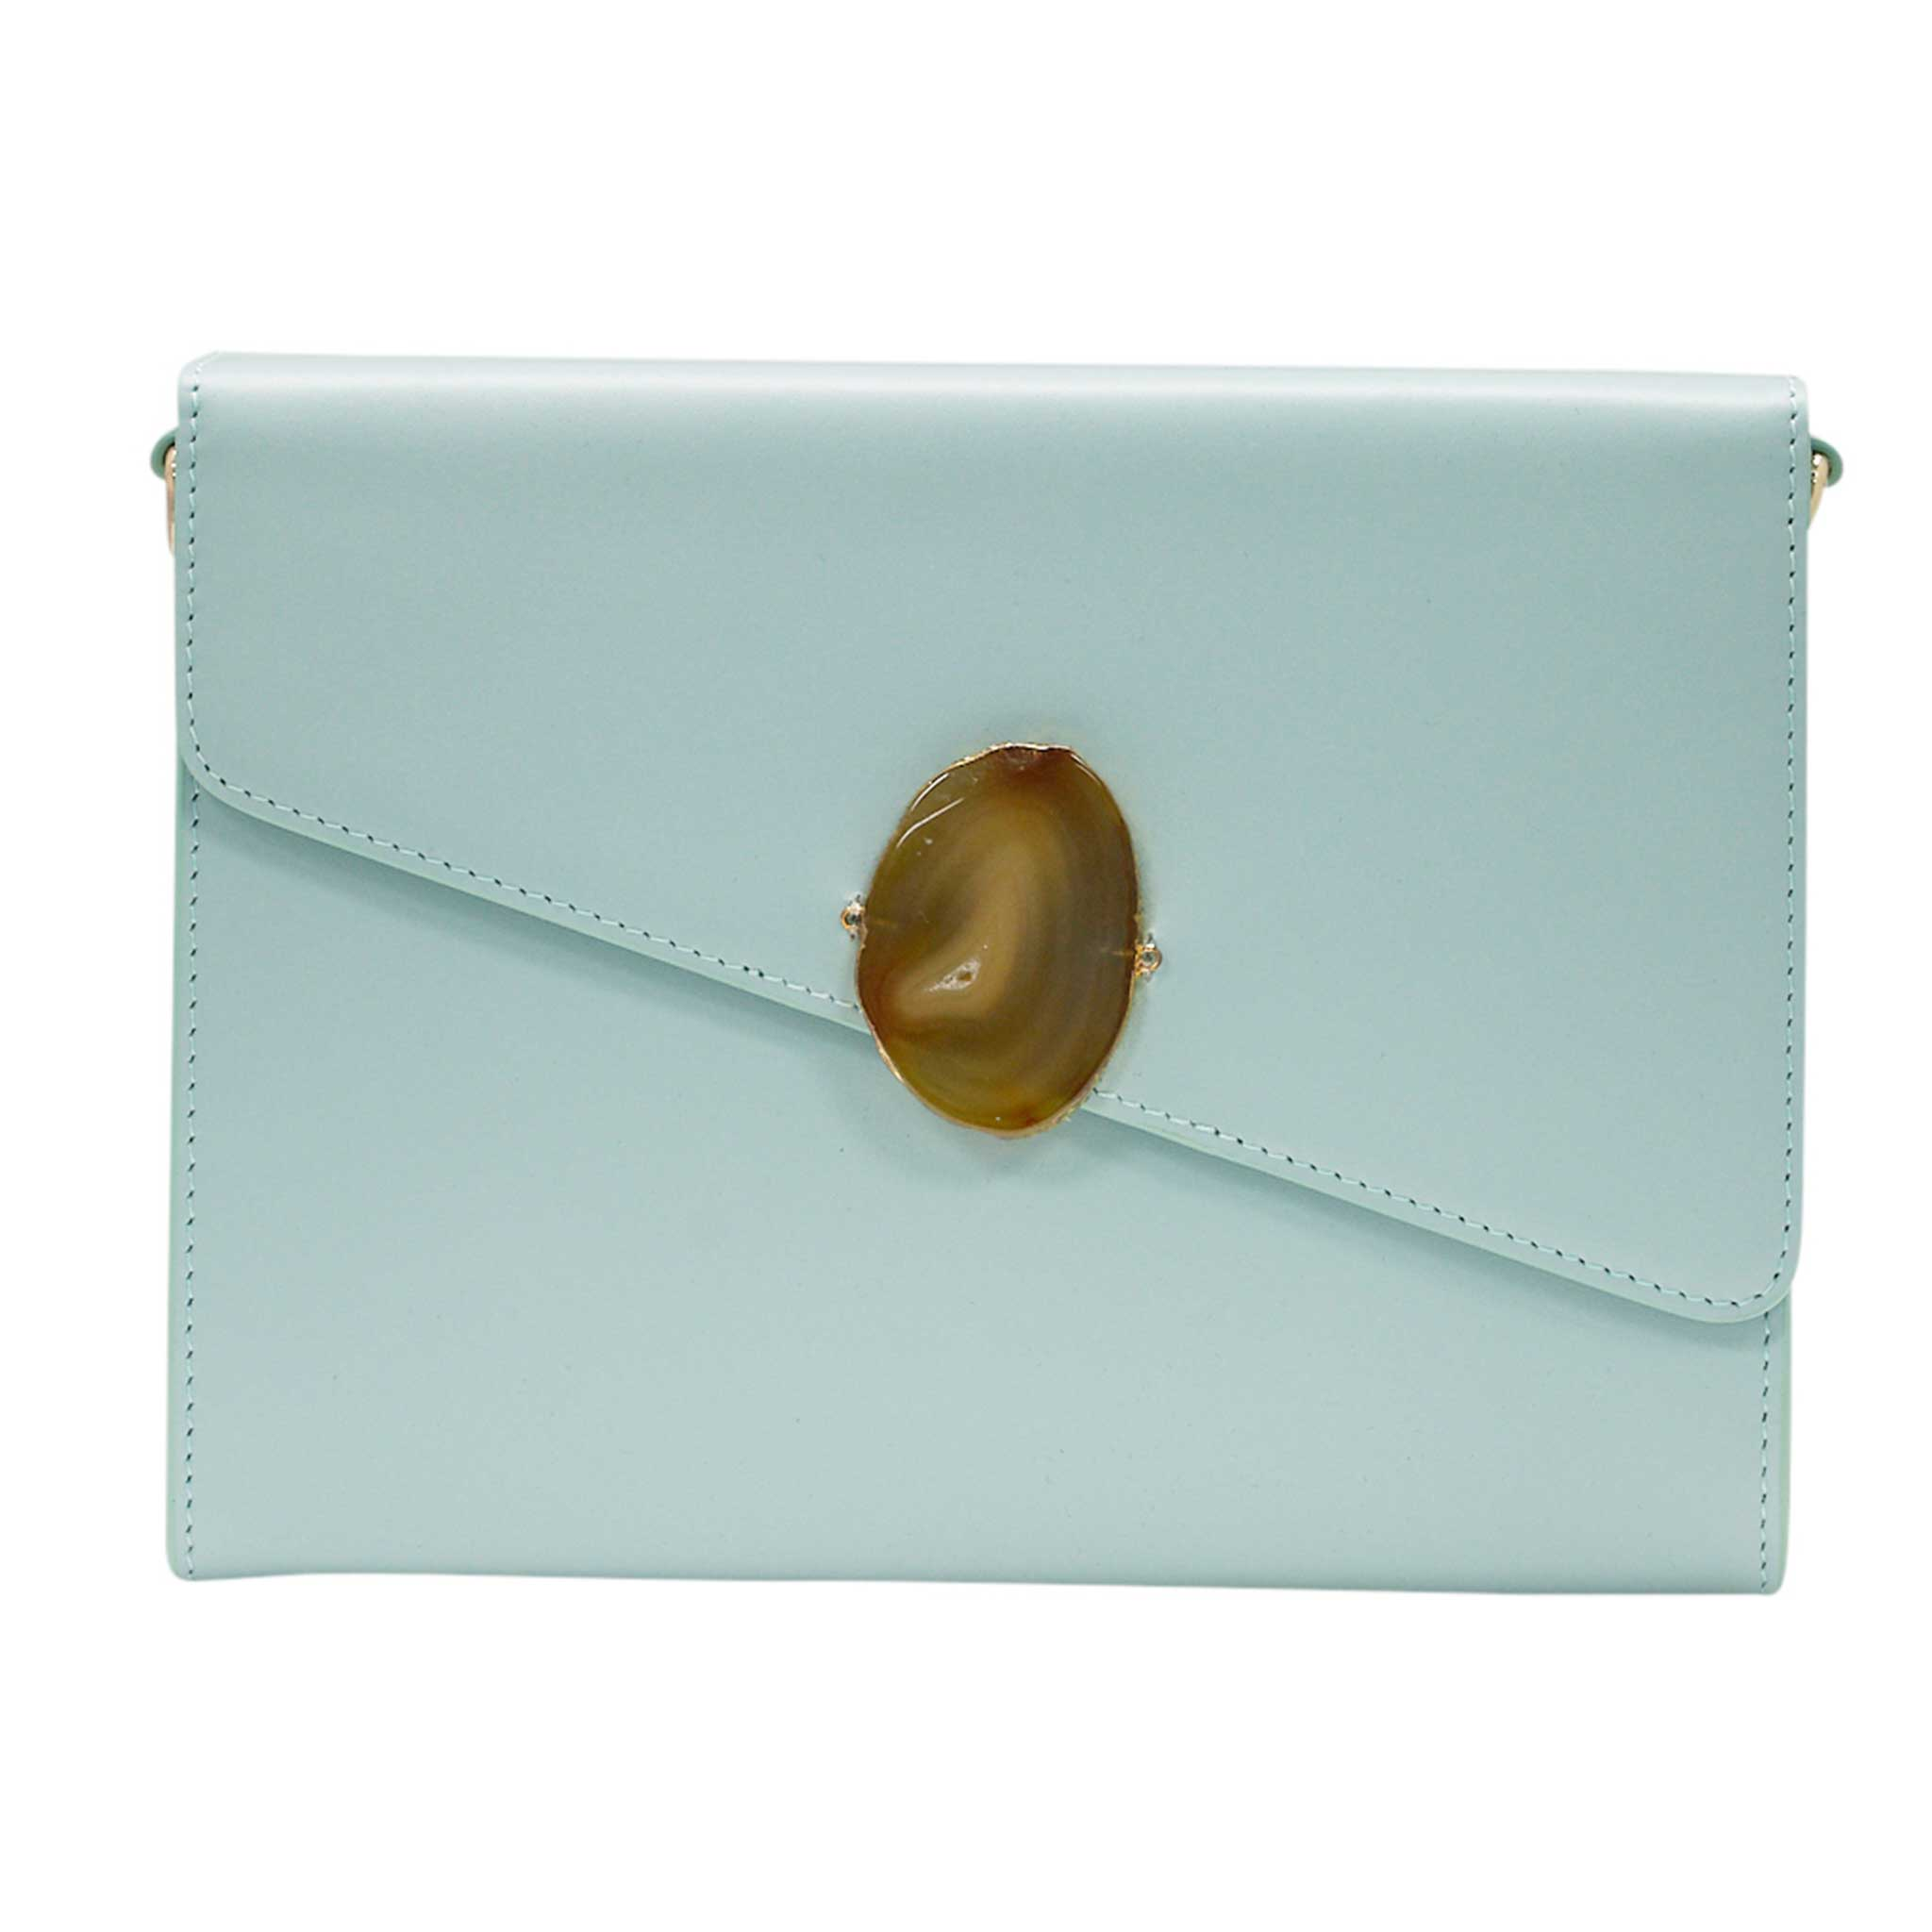 LOVED BAG - MOONSTONE WHITE LEATHER WITH YELLOW AGATE - 1.02.004.015